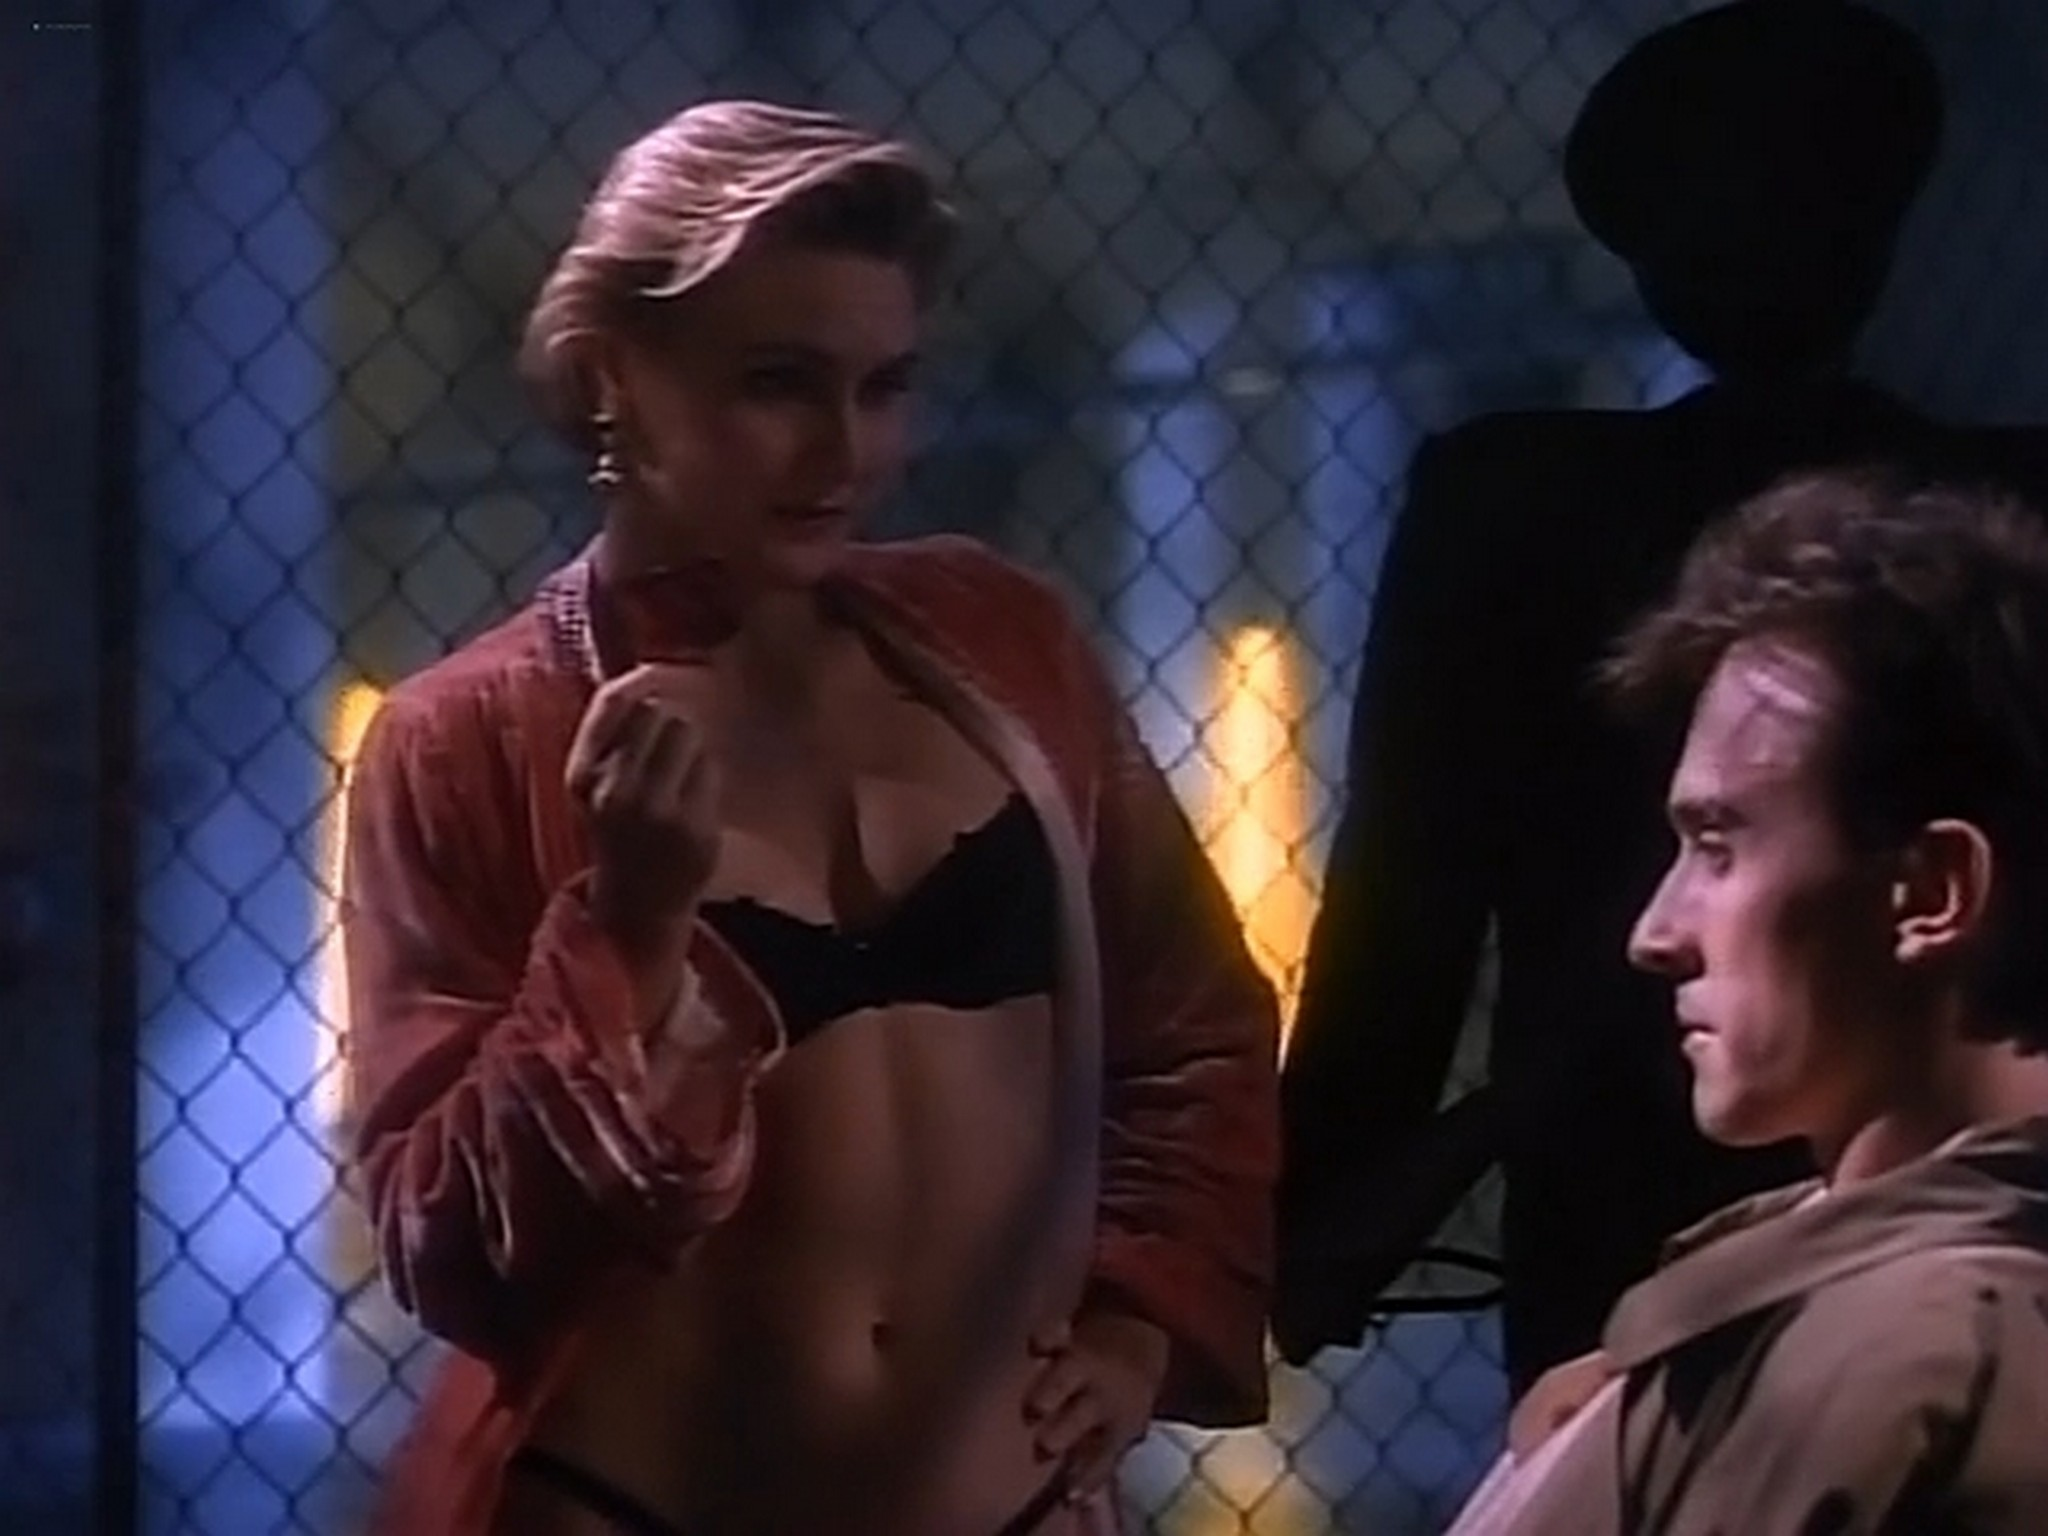 Denise Crosby nude and sex Red Shoe Diaries You Have the Right to Remain Silent 1992 DVDRip 5